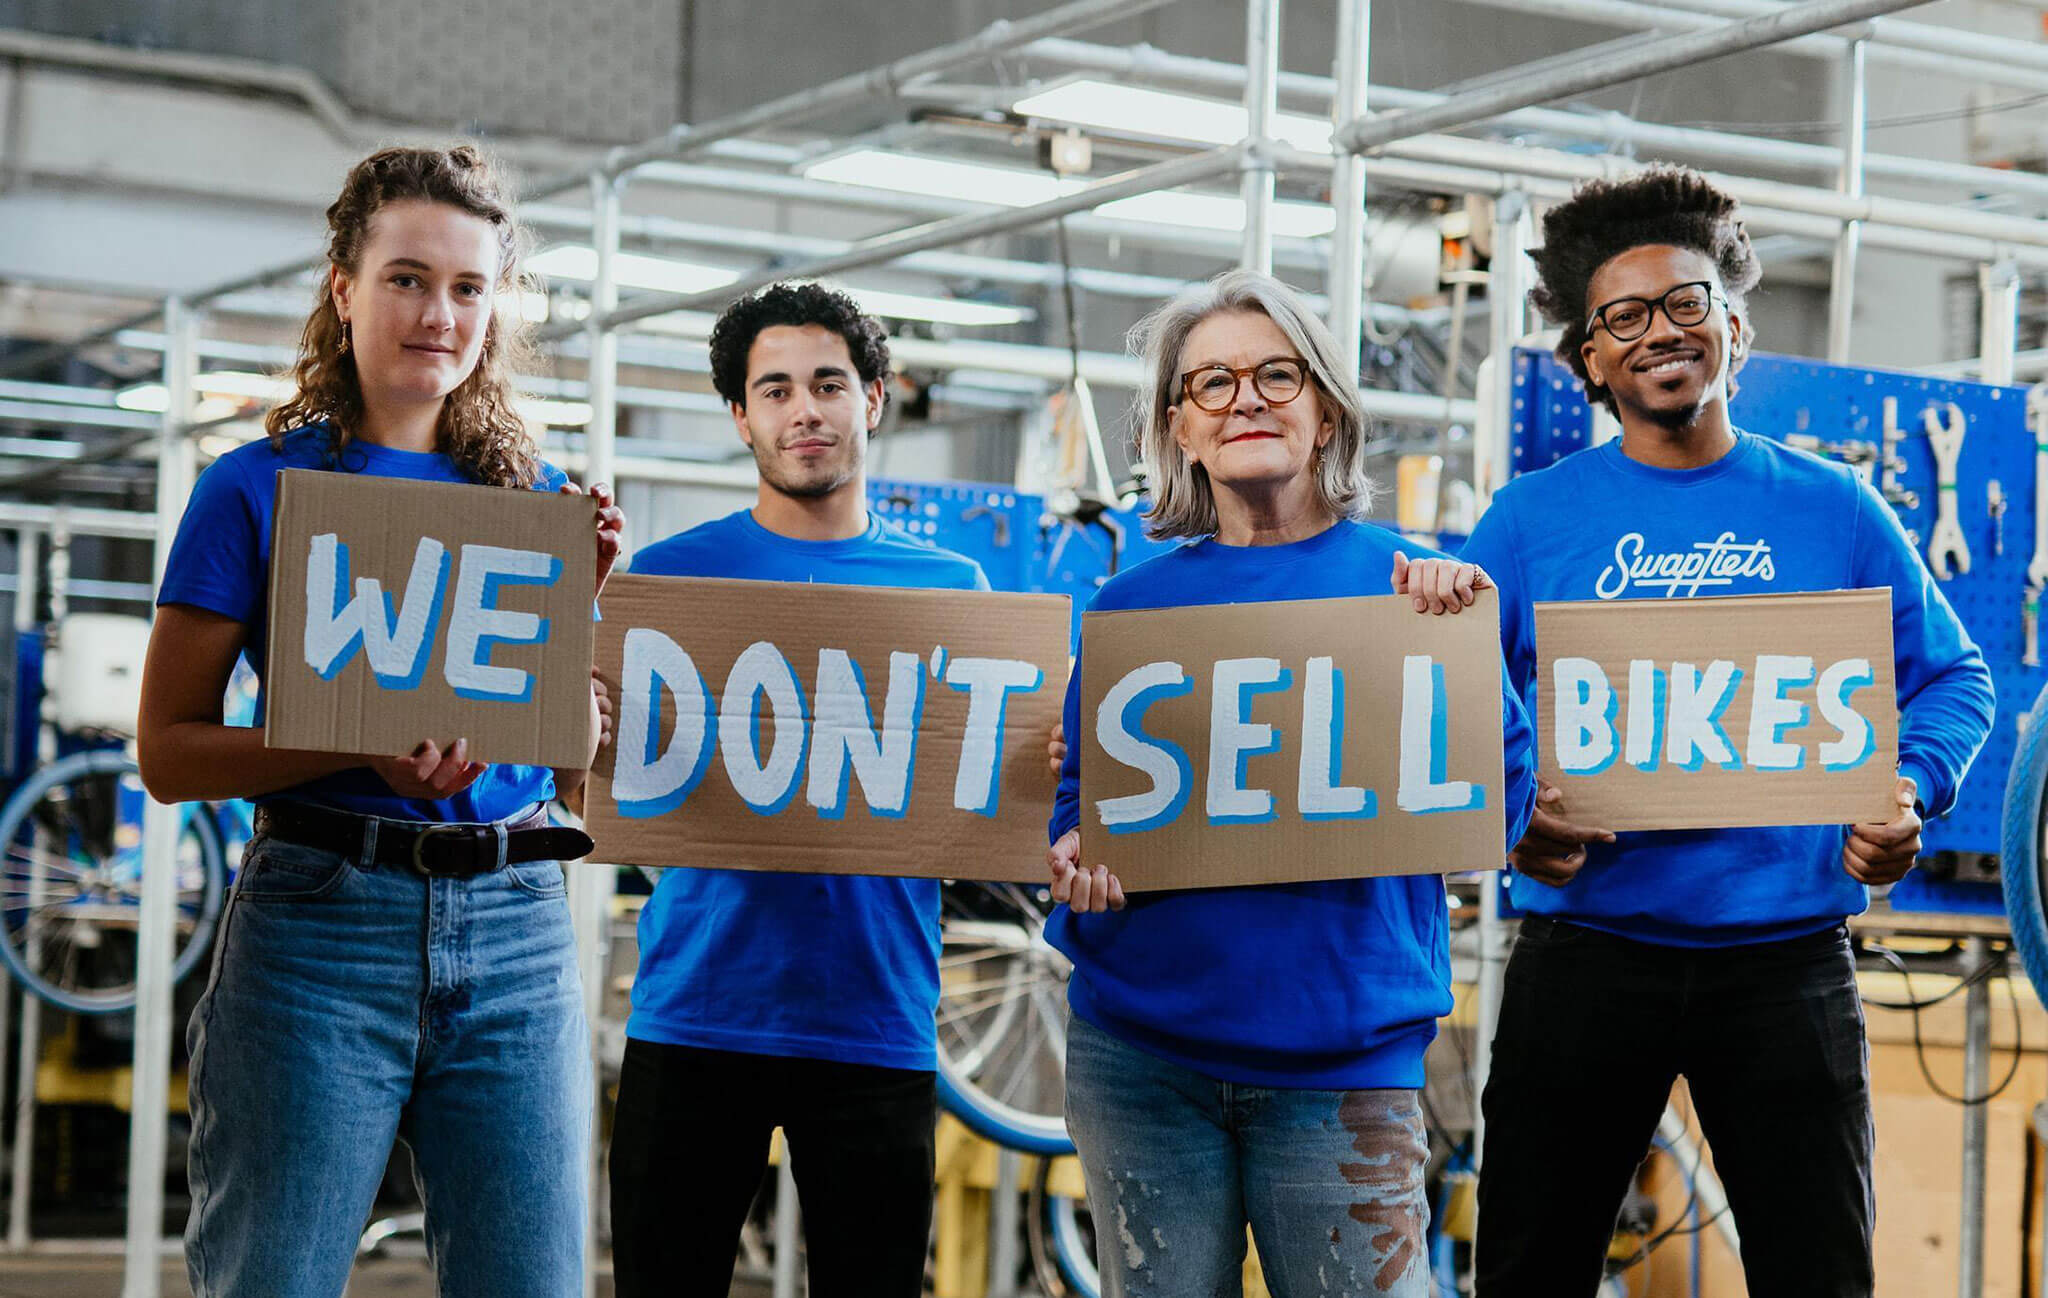 Swapfiets - We don't sell bikes